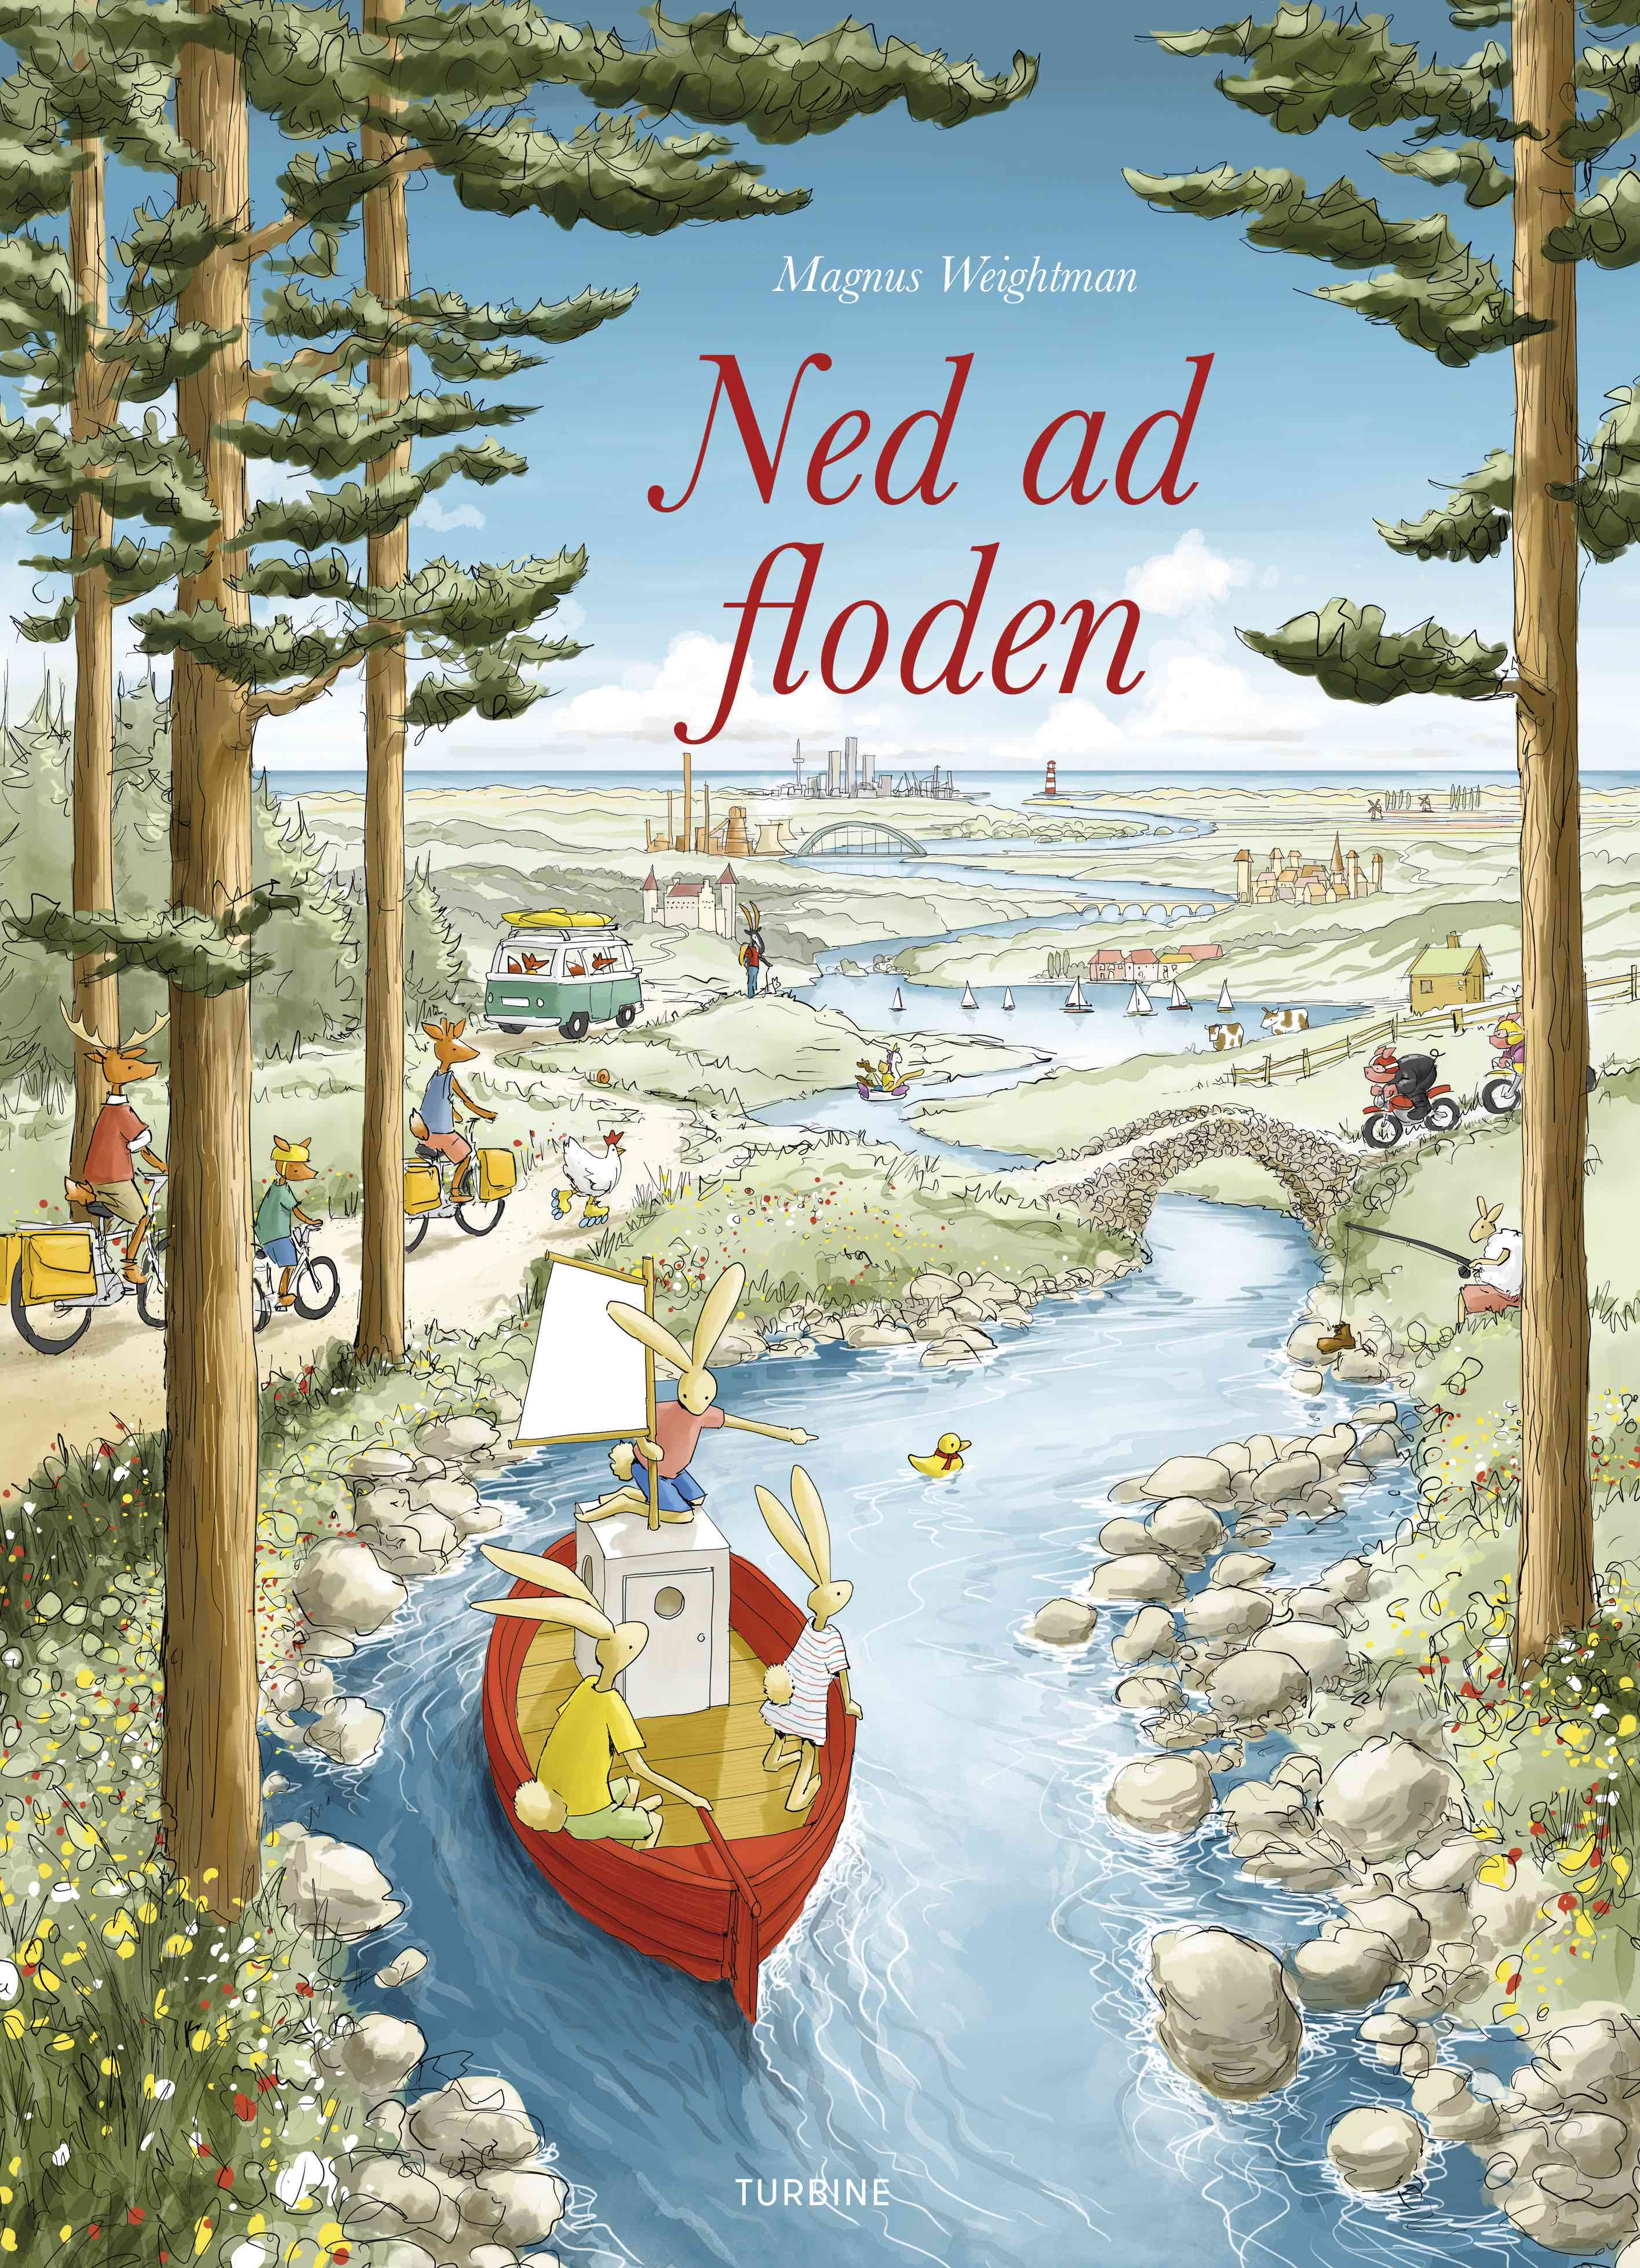 Ned ad floden